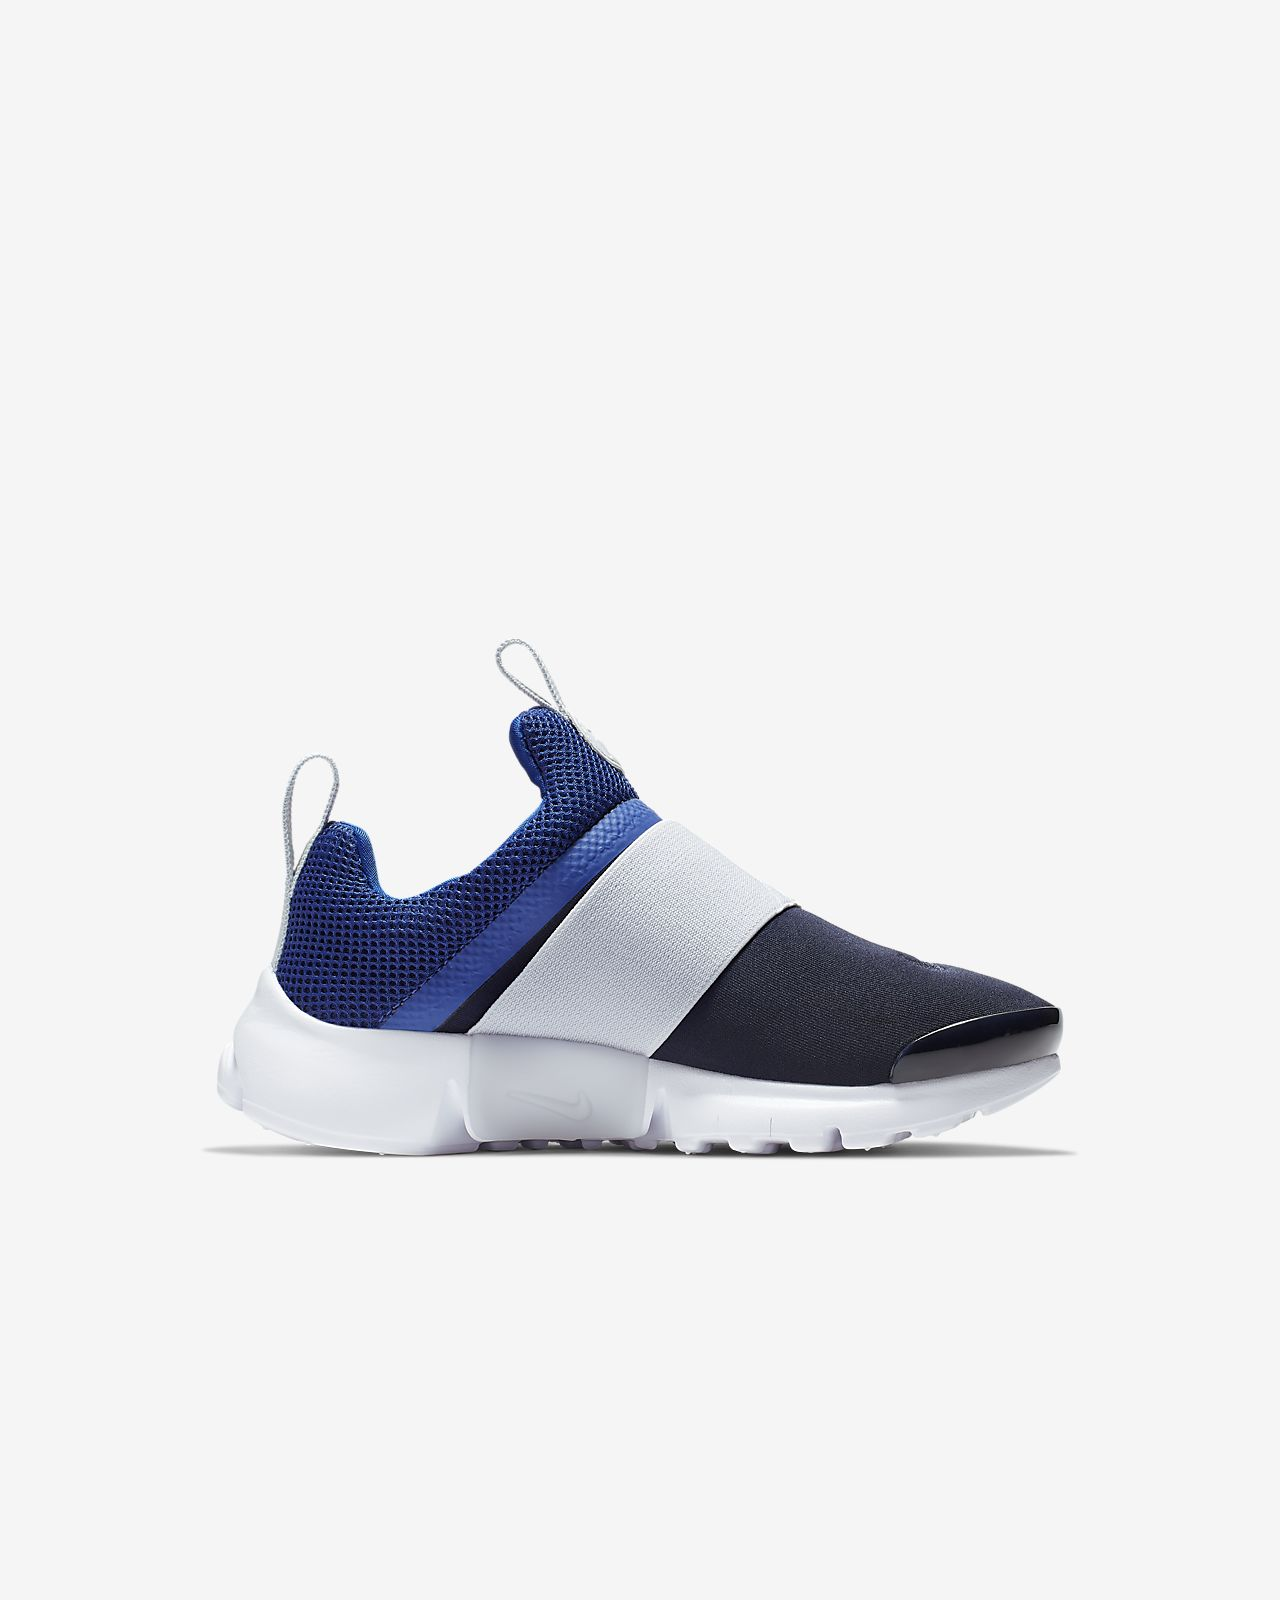 check out 1fca7 f2703 ... Nike Presto Extreme Little Kids  Shoe